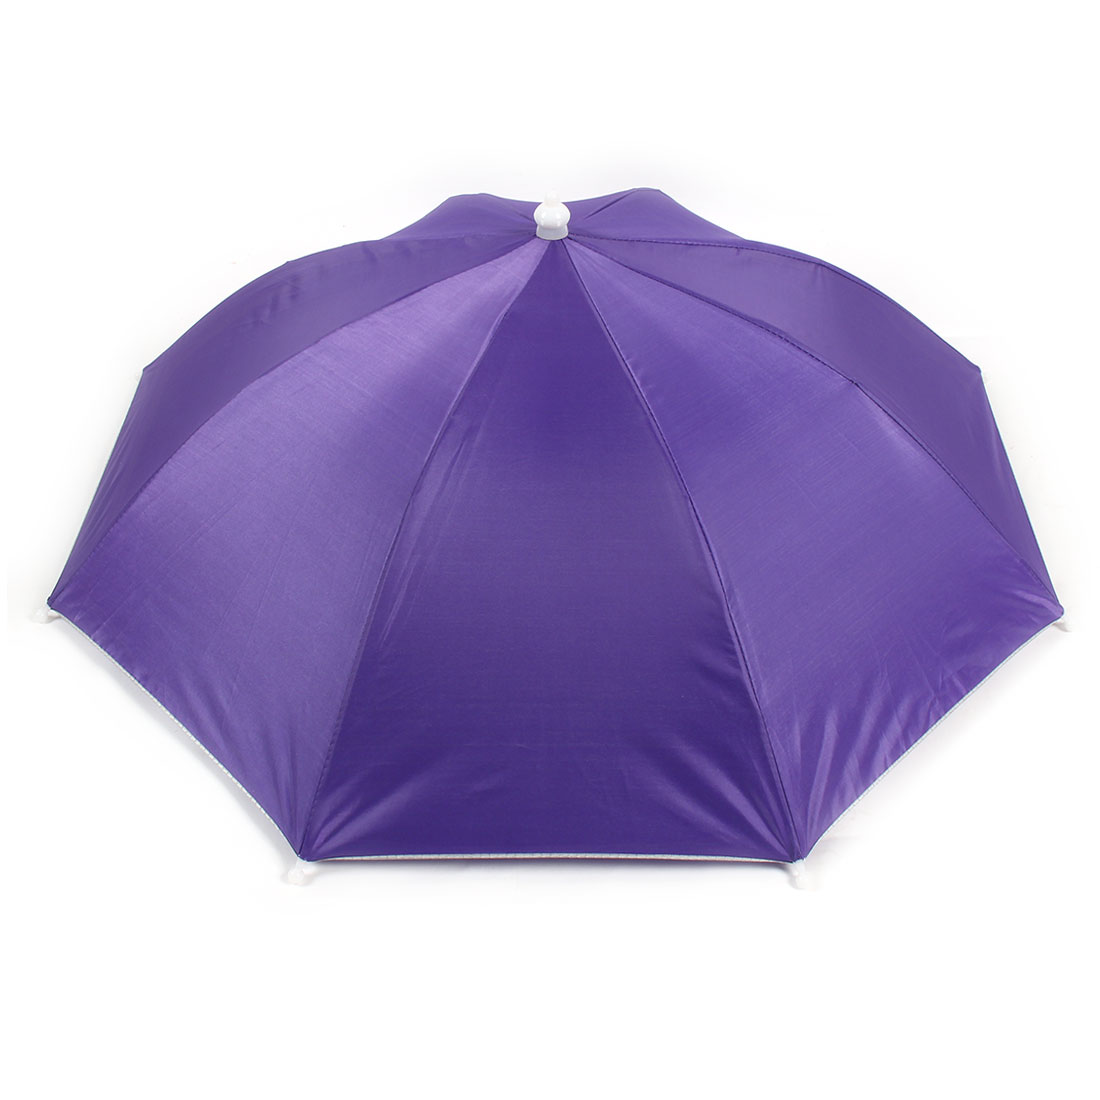 Portable Black Elastic Headband Purple Canopy Umbrella Hat Cap for Fishing